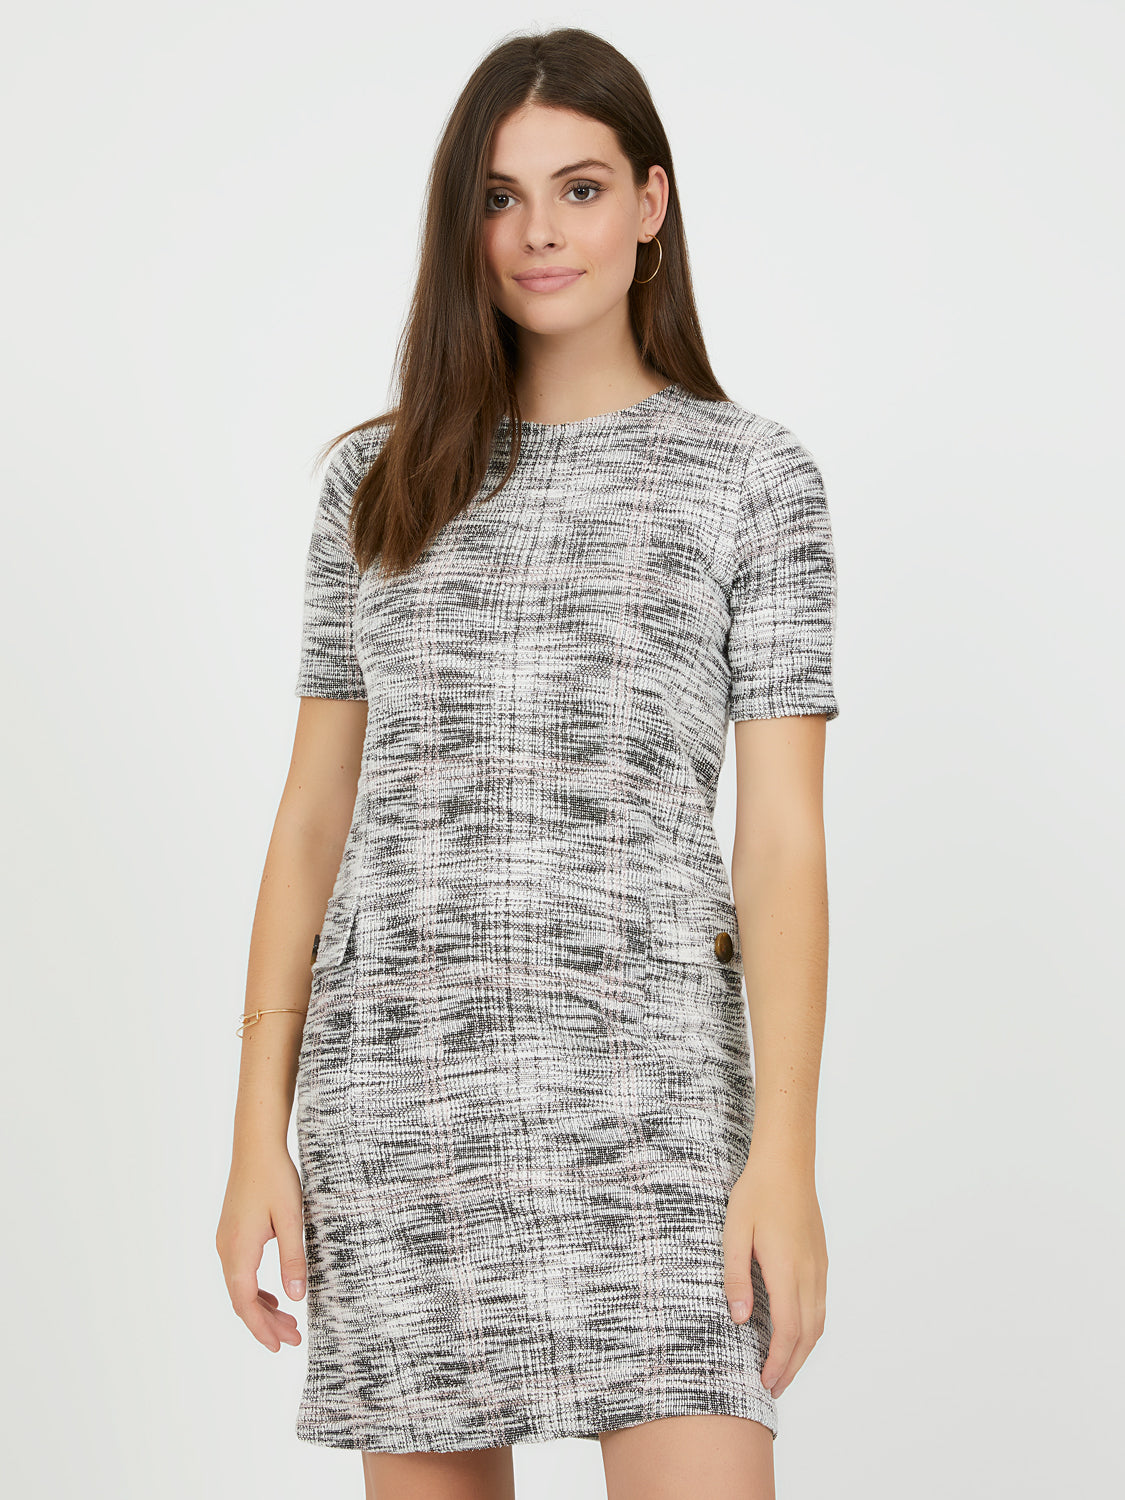 Knit Jacquard Sheath Dress